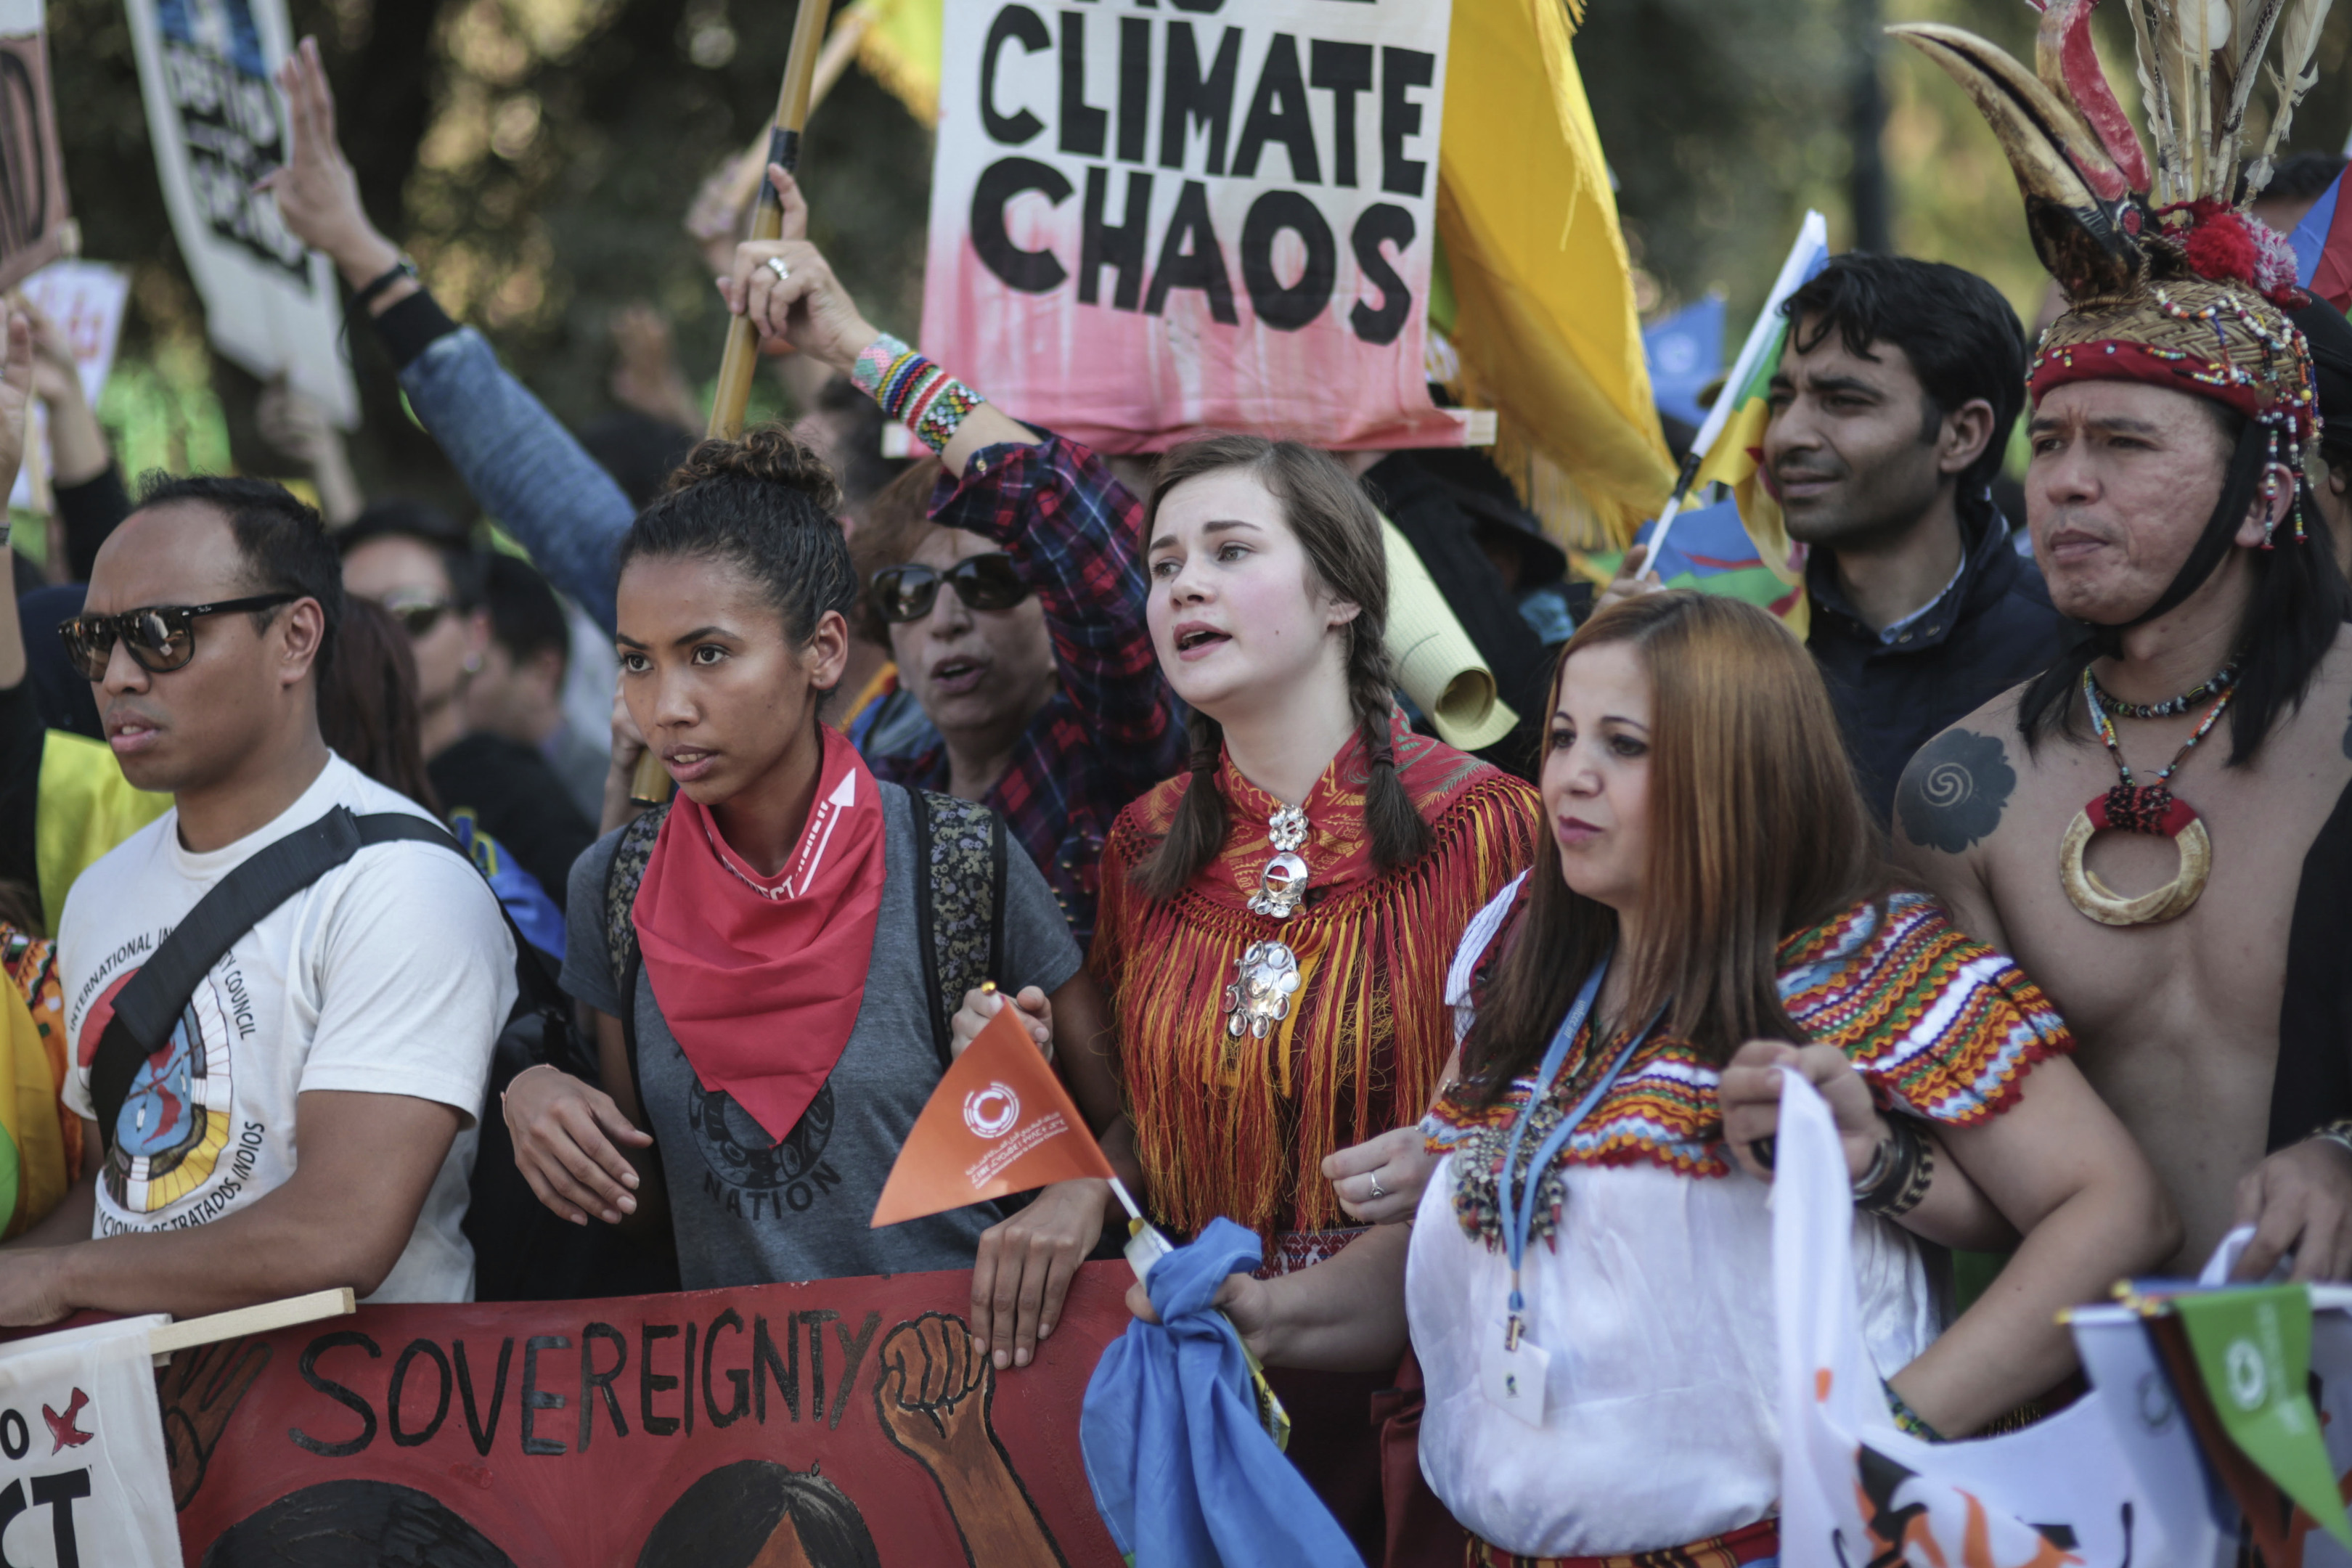 Protesters urge world leaders to take action, in a march coinciding with the Climate Conference, known as COP22, taking place in Marrakech, Morocco.